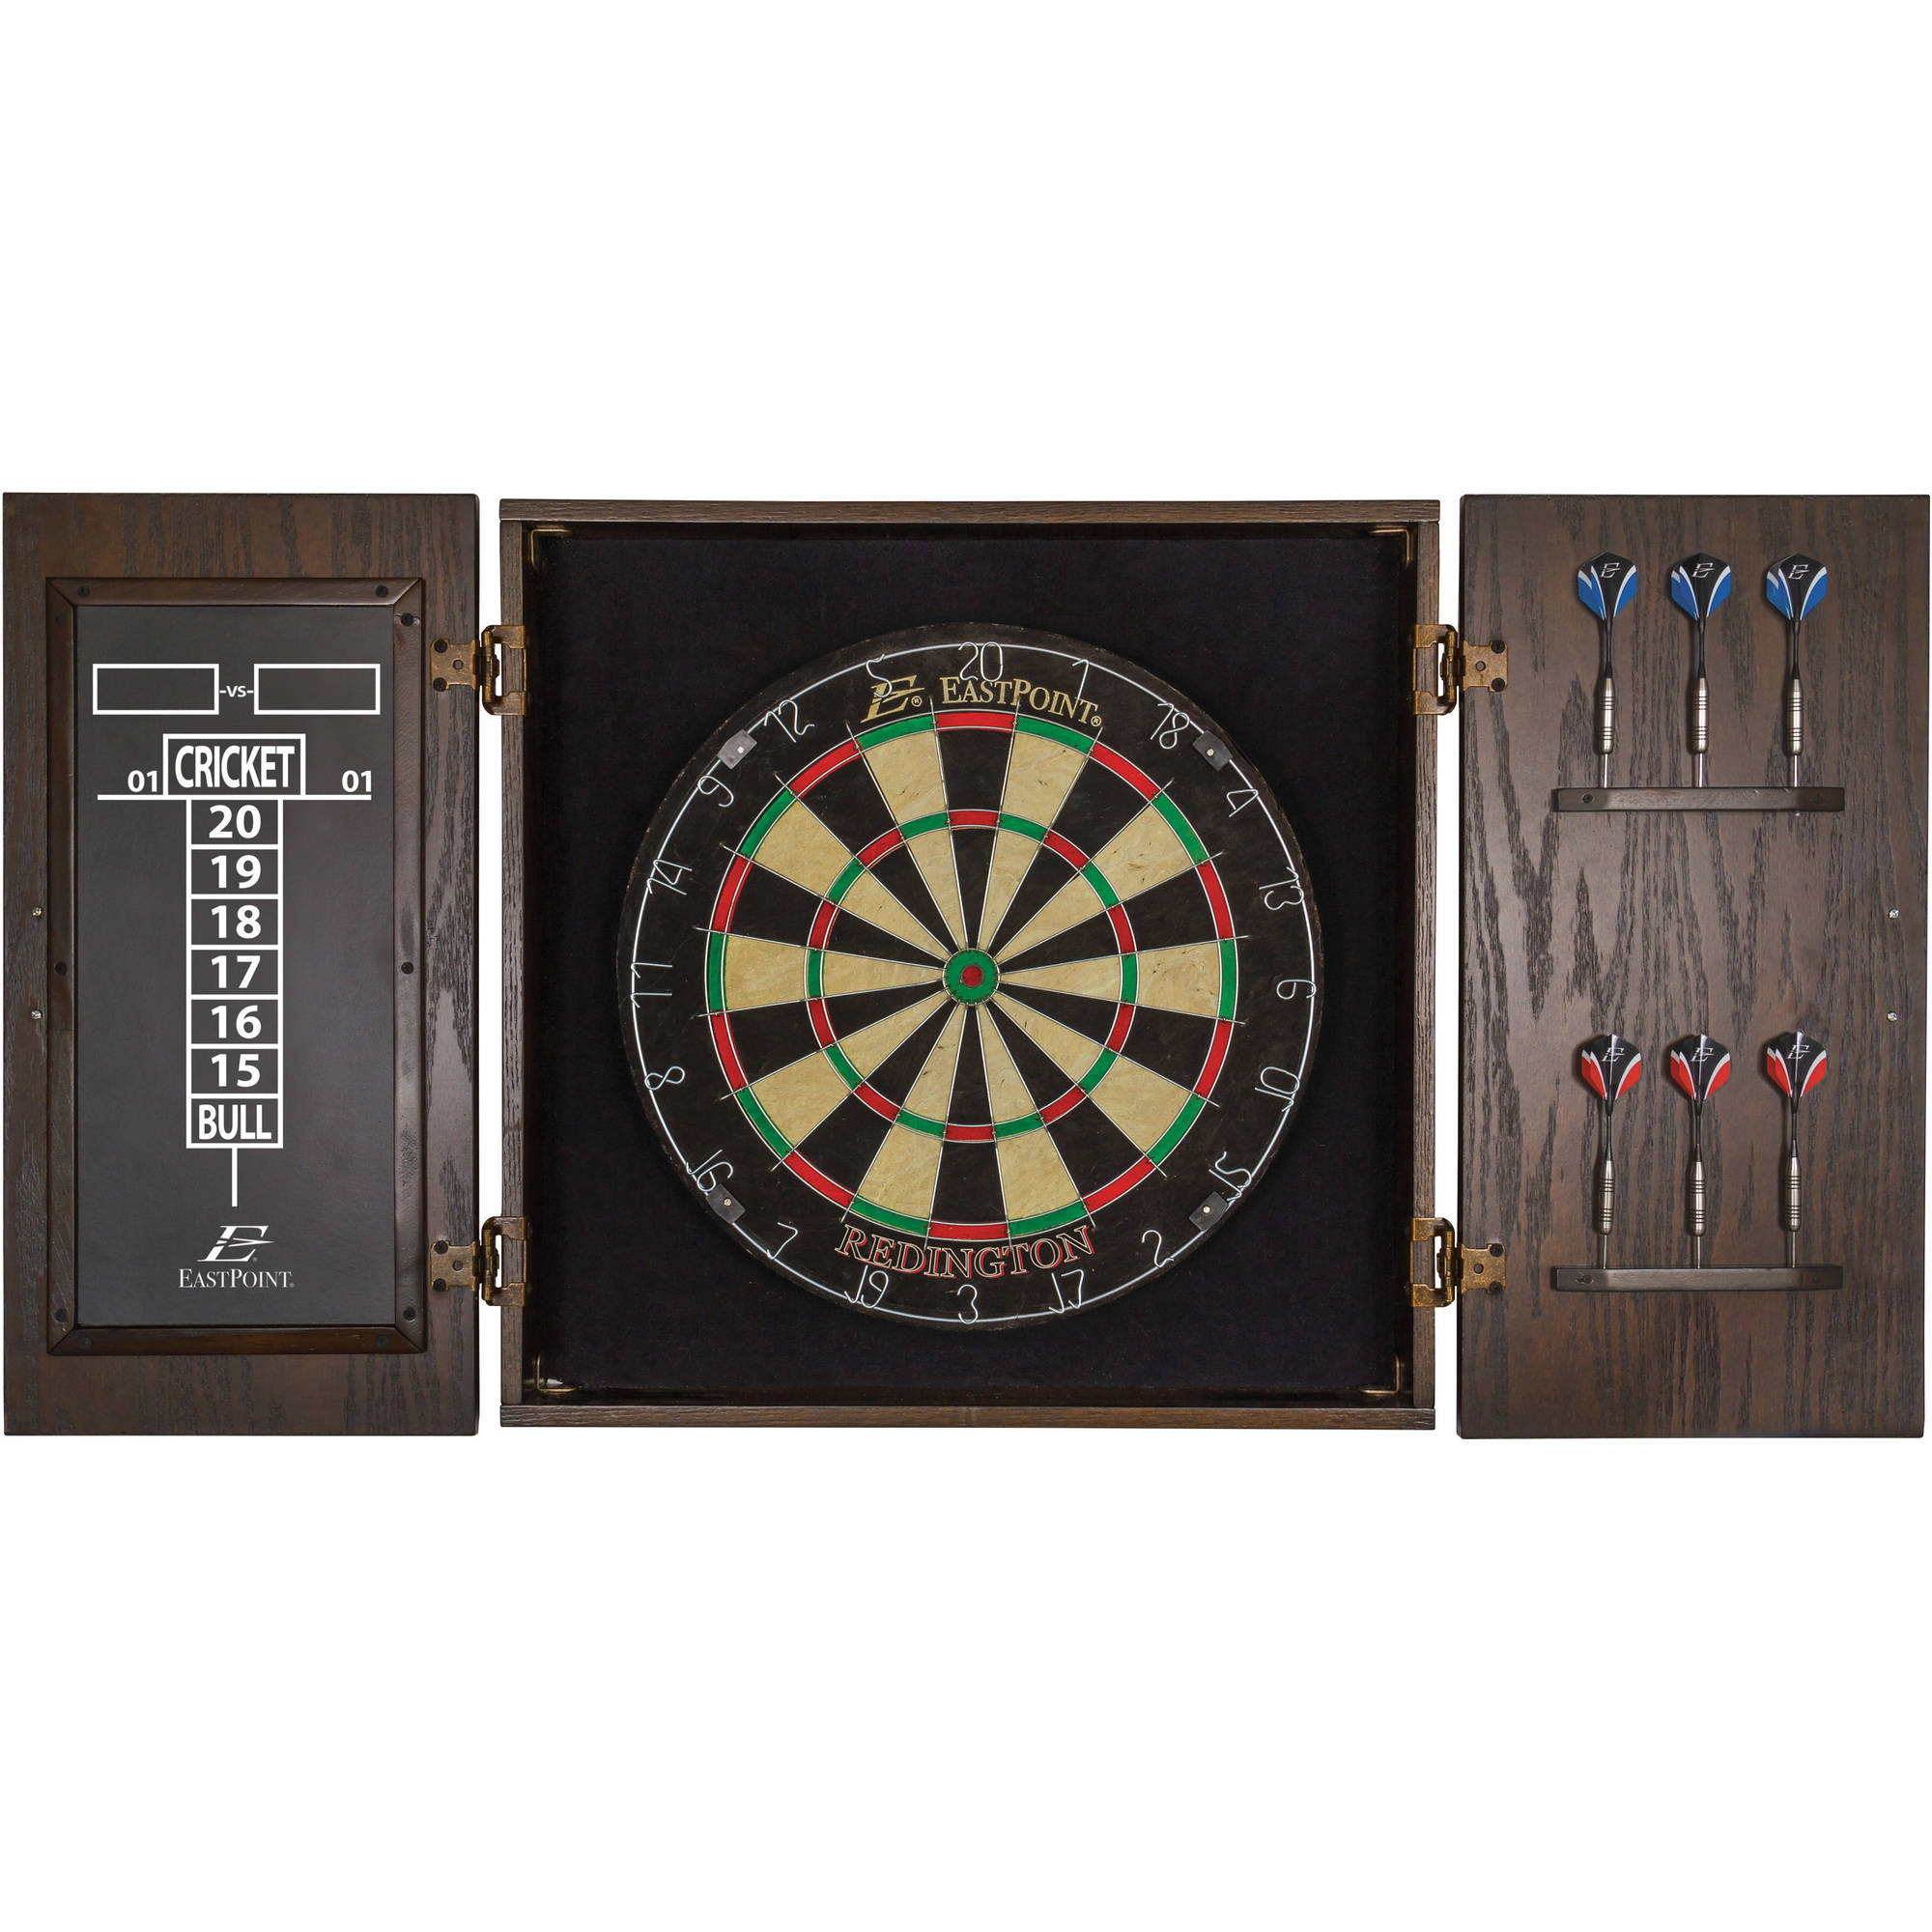 EastPoint Sports 18-inch Redington Bristle Dartboard and Cabinet Set